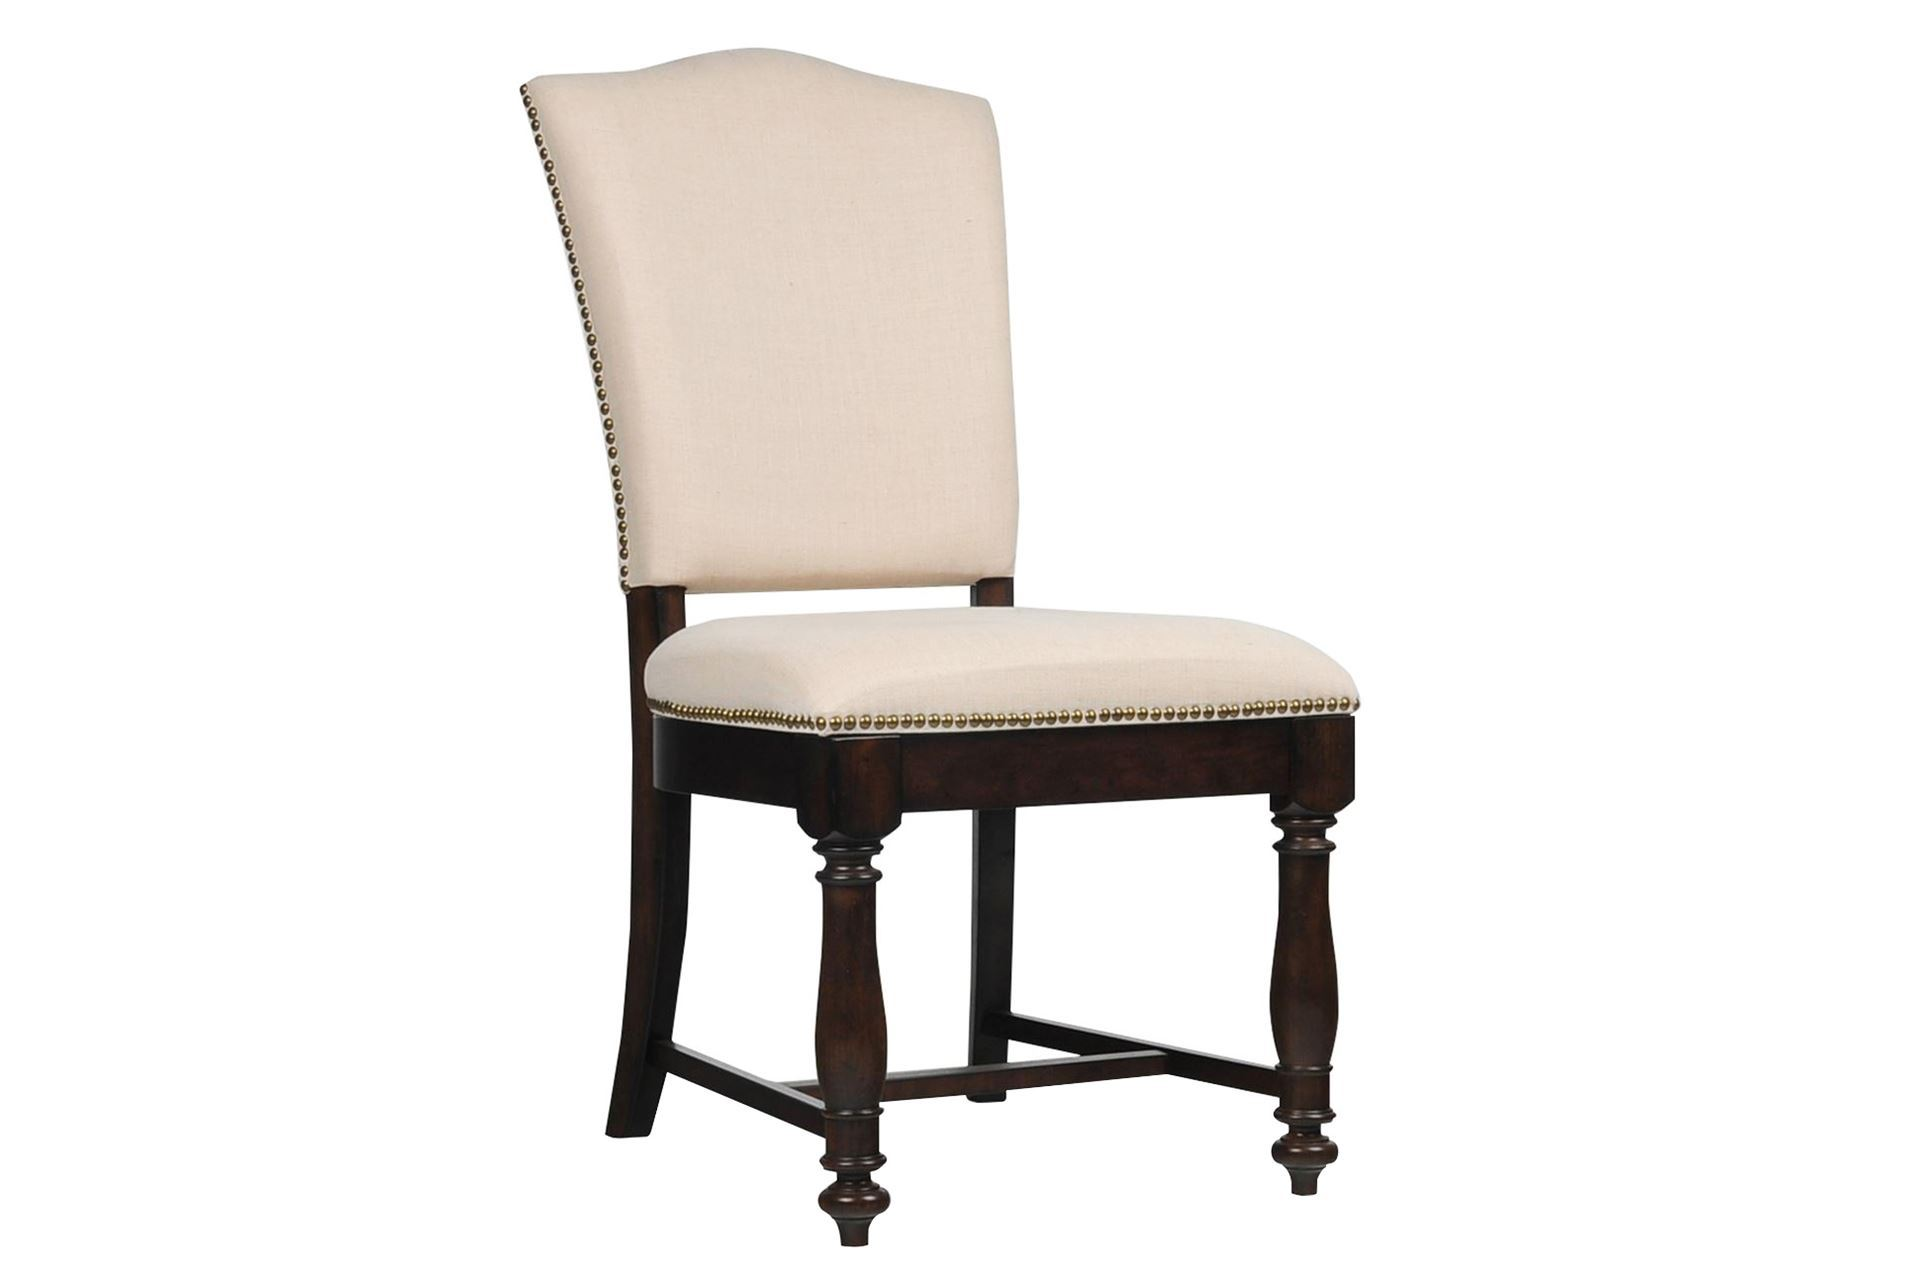 Arlo upholstered side chair living spaces - Upholstered chairs for small spaces concept ...